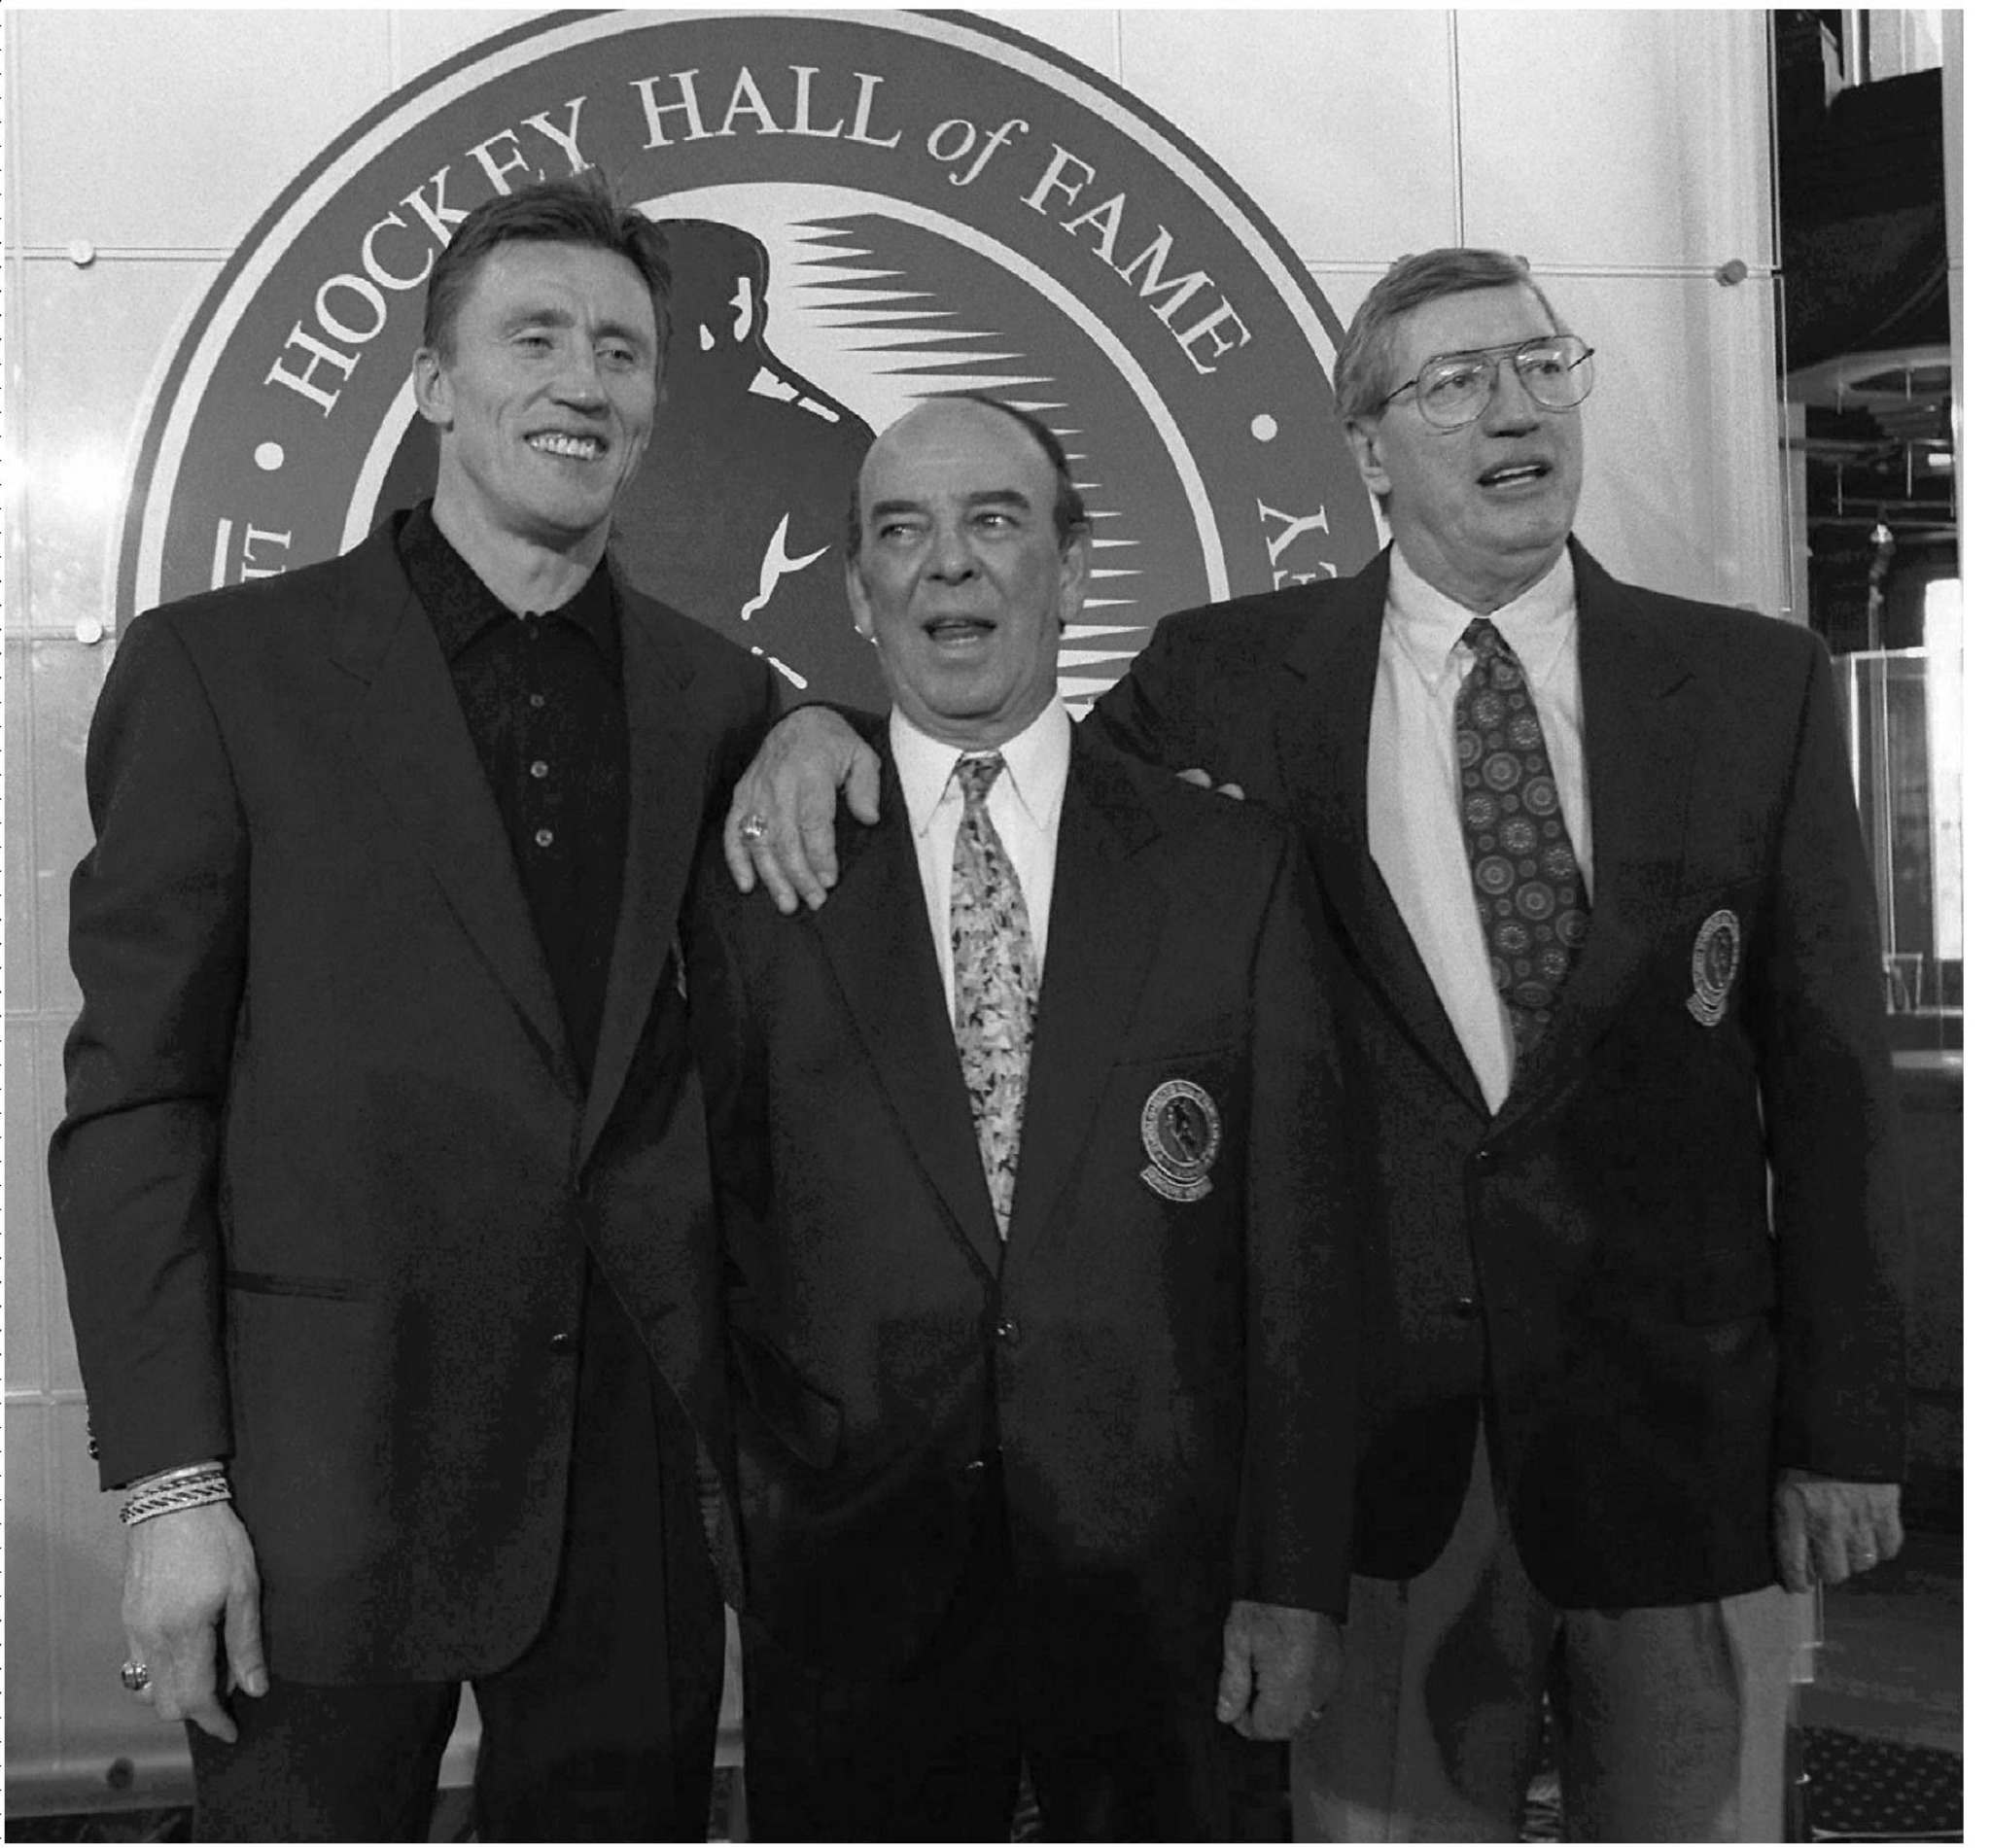 Former Toronto Maple Leaf Borje Salming (from left), Bob Cole and player and coach Al Arbour pose at a news conference in Toronto in 1996 prior to their induction into the Hockey Hall of Fame. (Moe Doiron / The Canadian Press files)